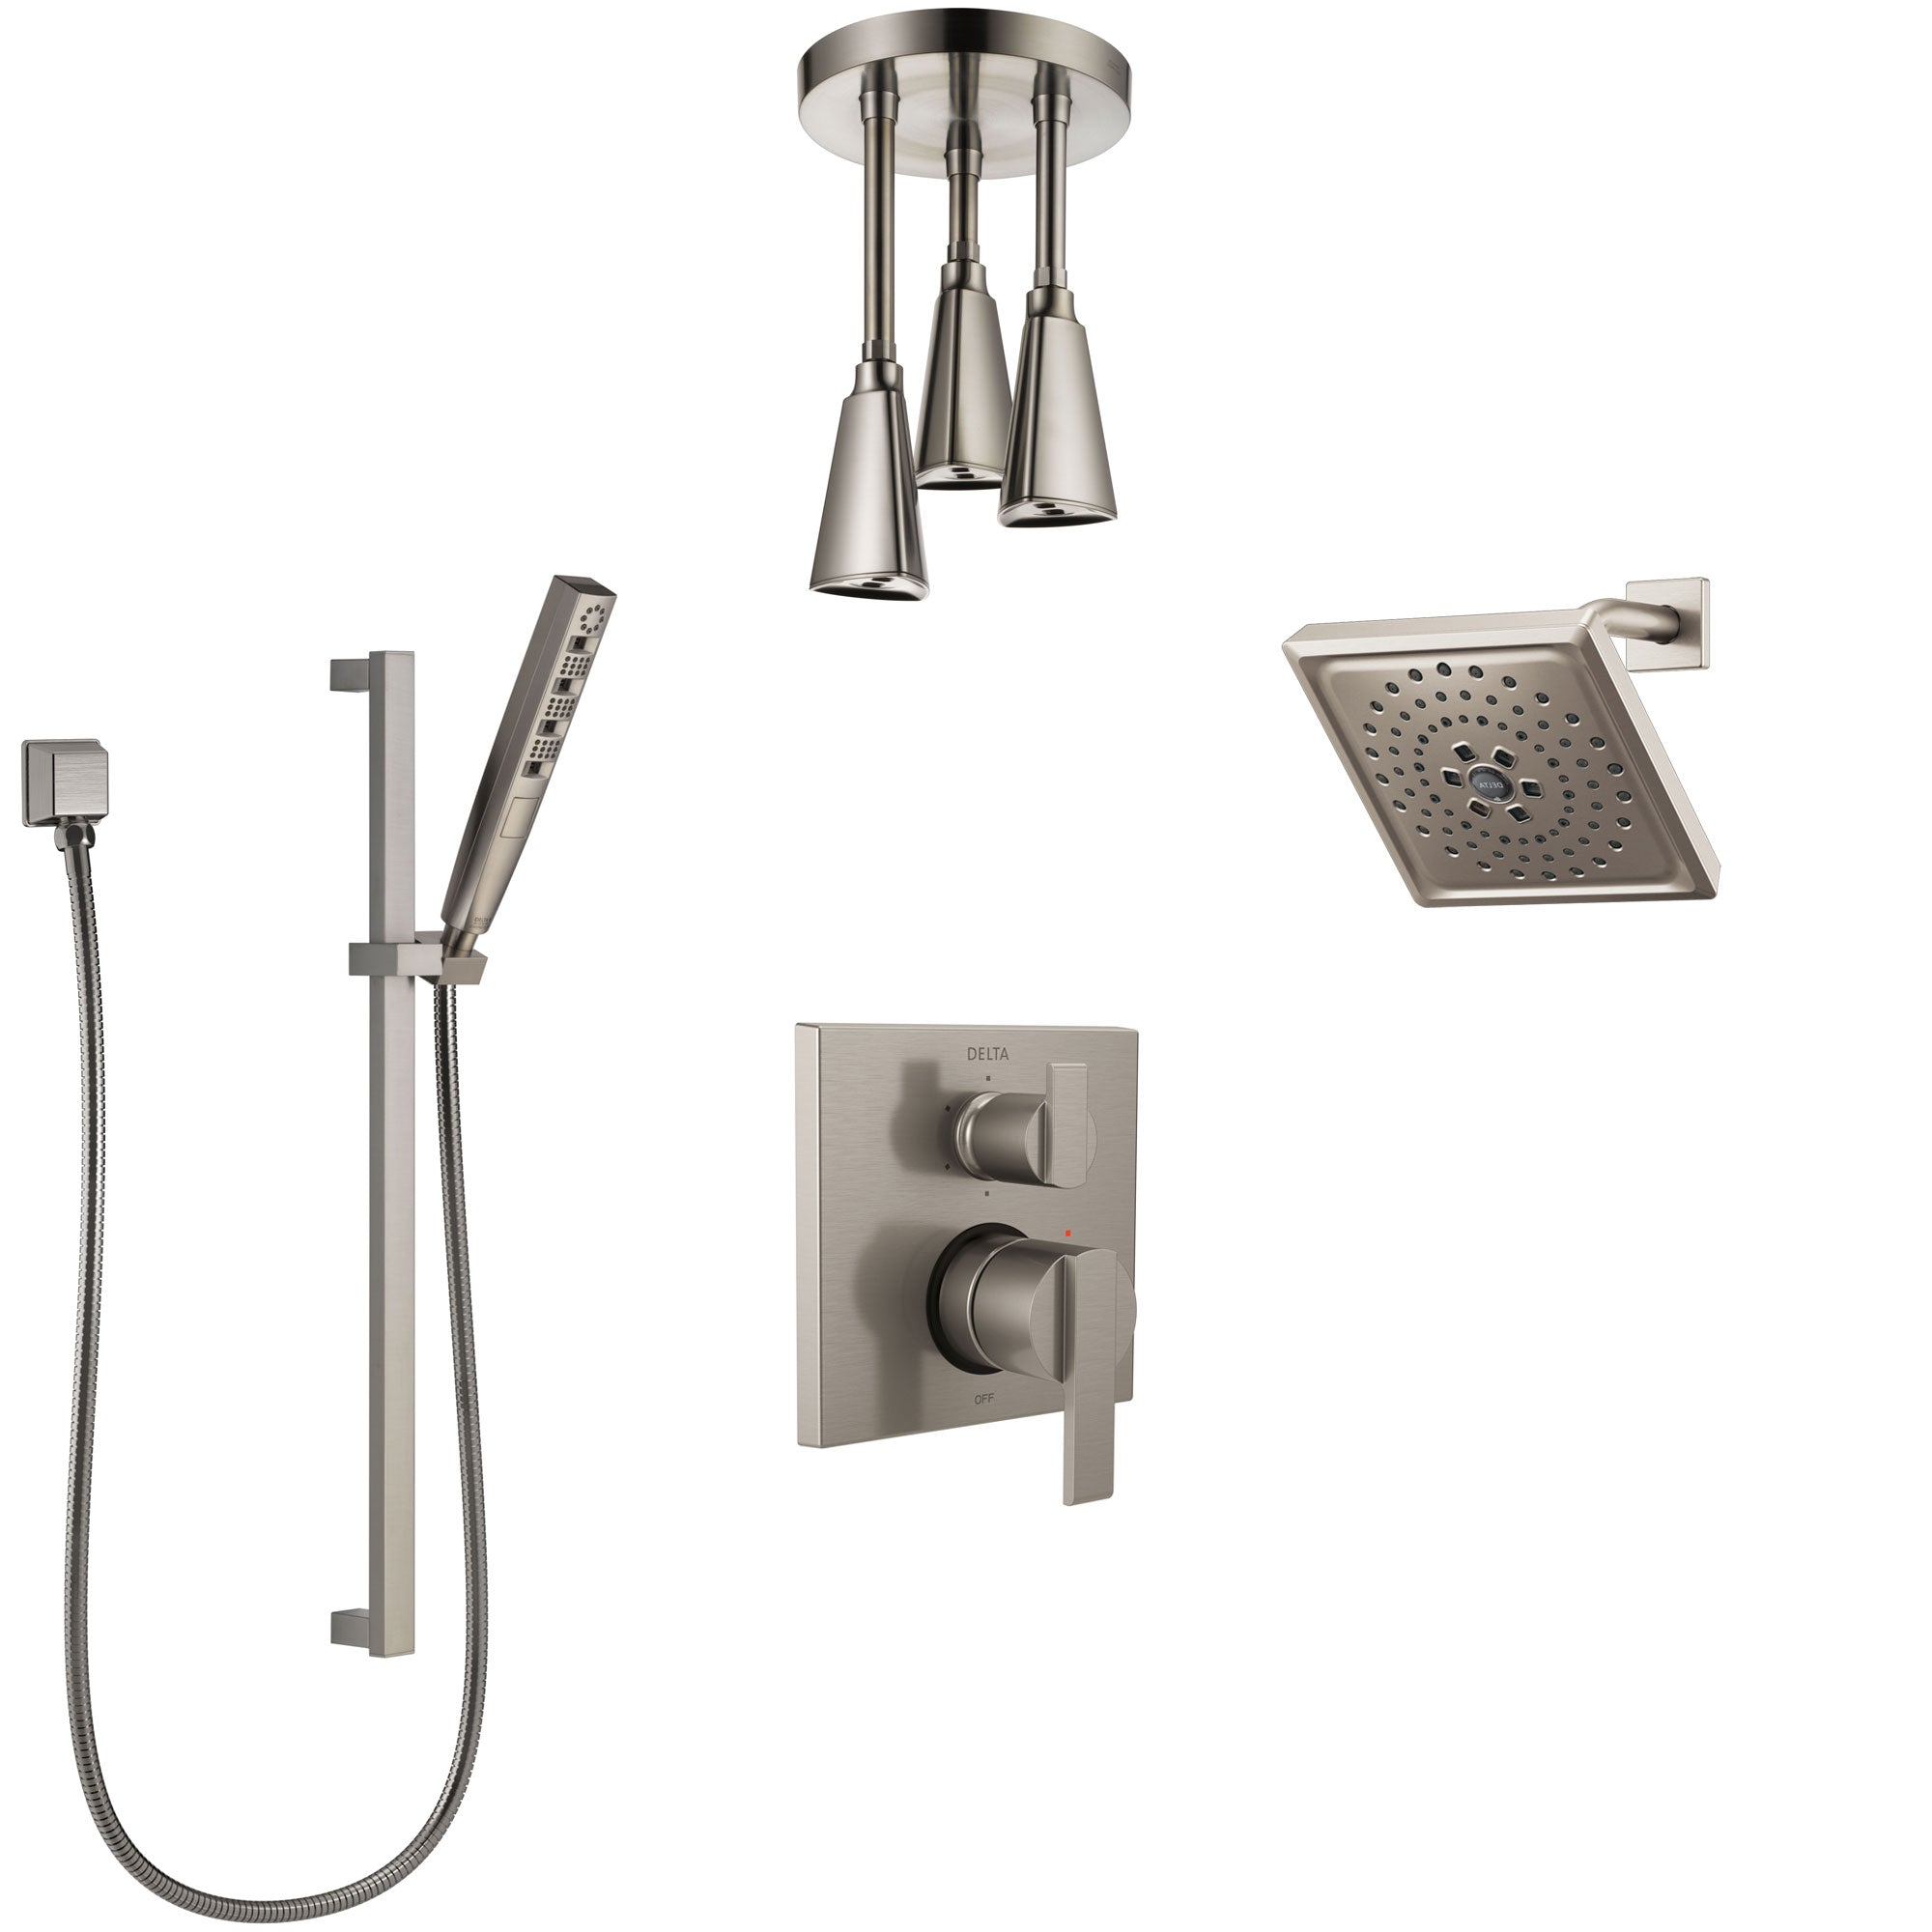 Delta Ara Stainless Steel Finish Shower System with Control Handle, Integrated Diverter, Showerhead, Ceiling Showerhead, and Hand Shower SS24967SS10